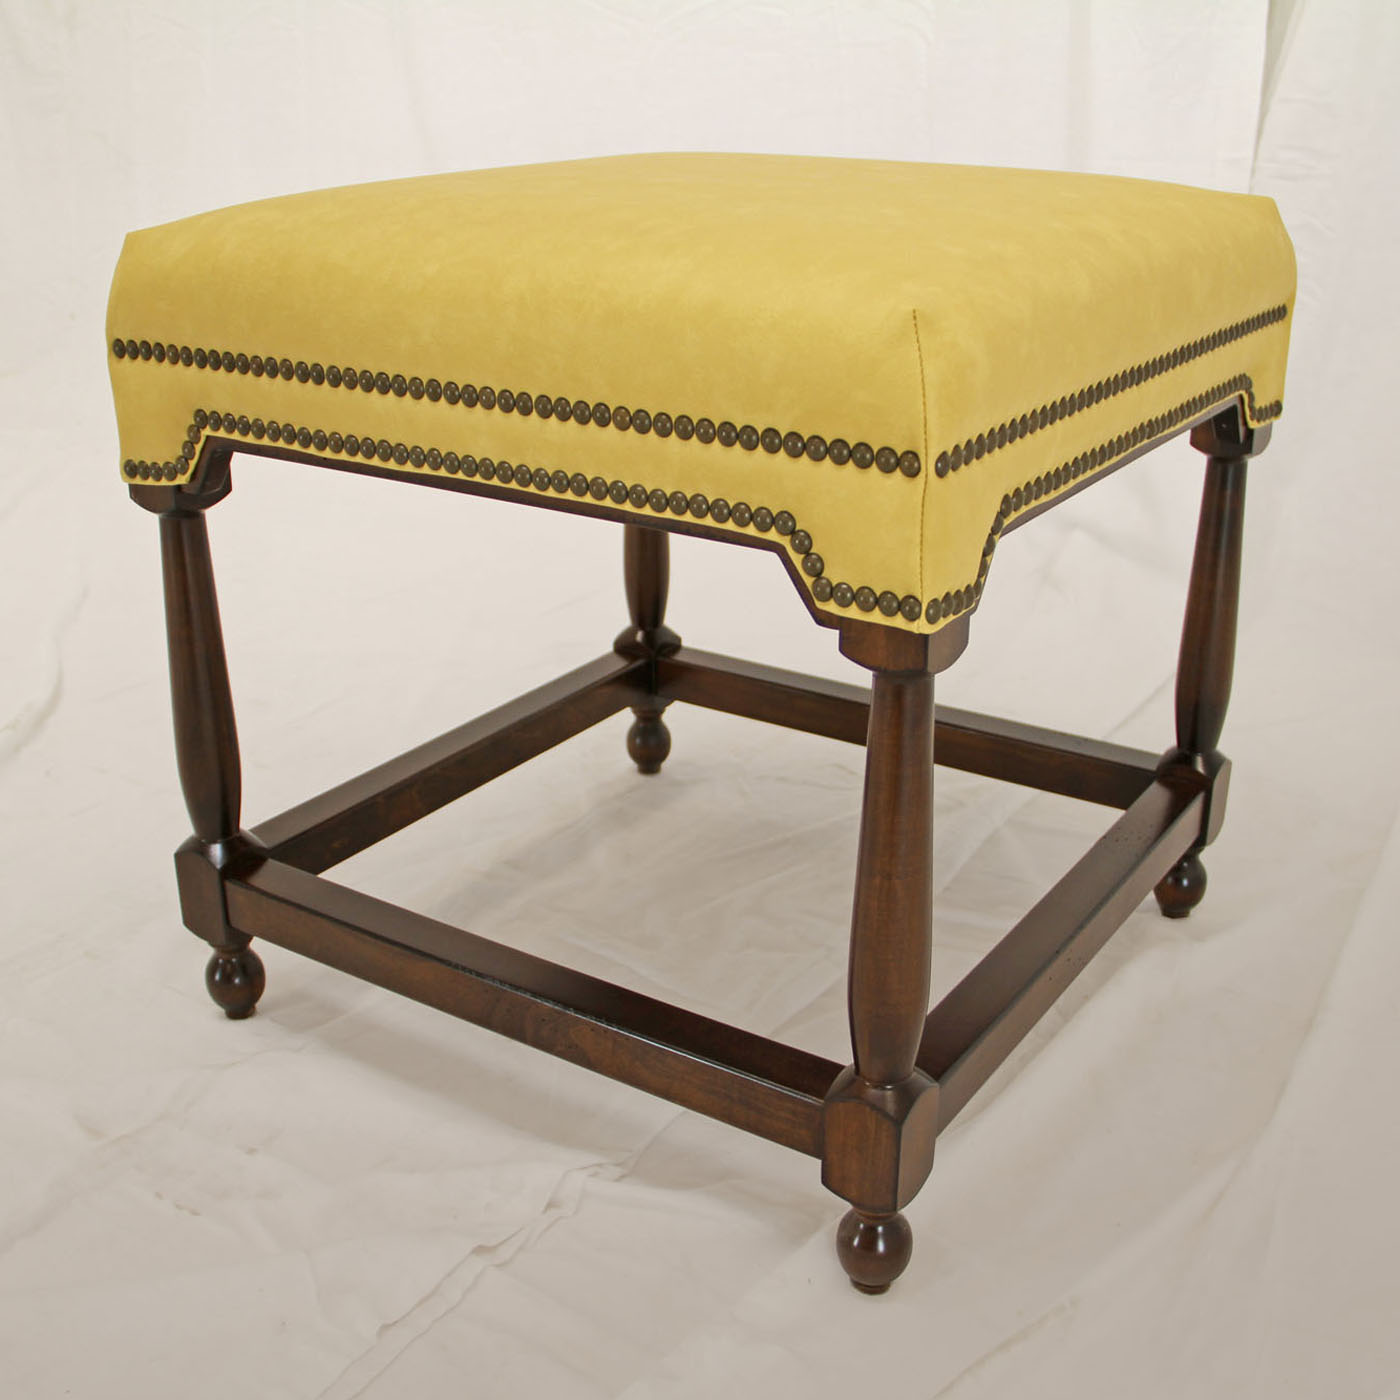 Stools Ottomans Benches 8